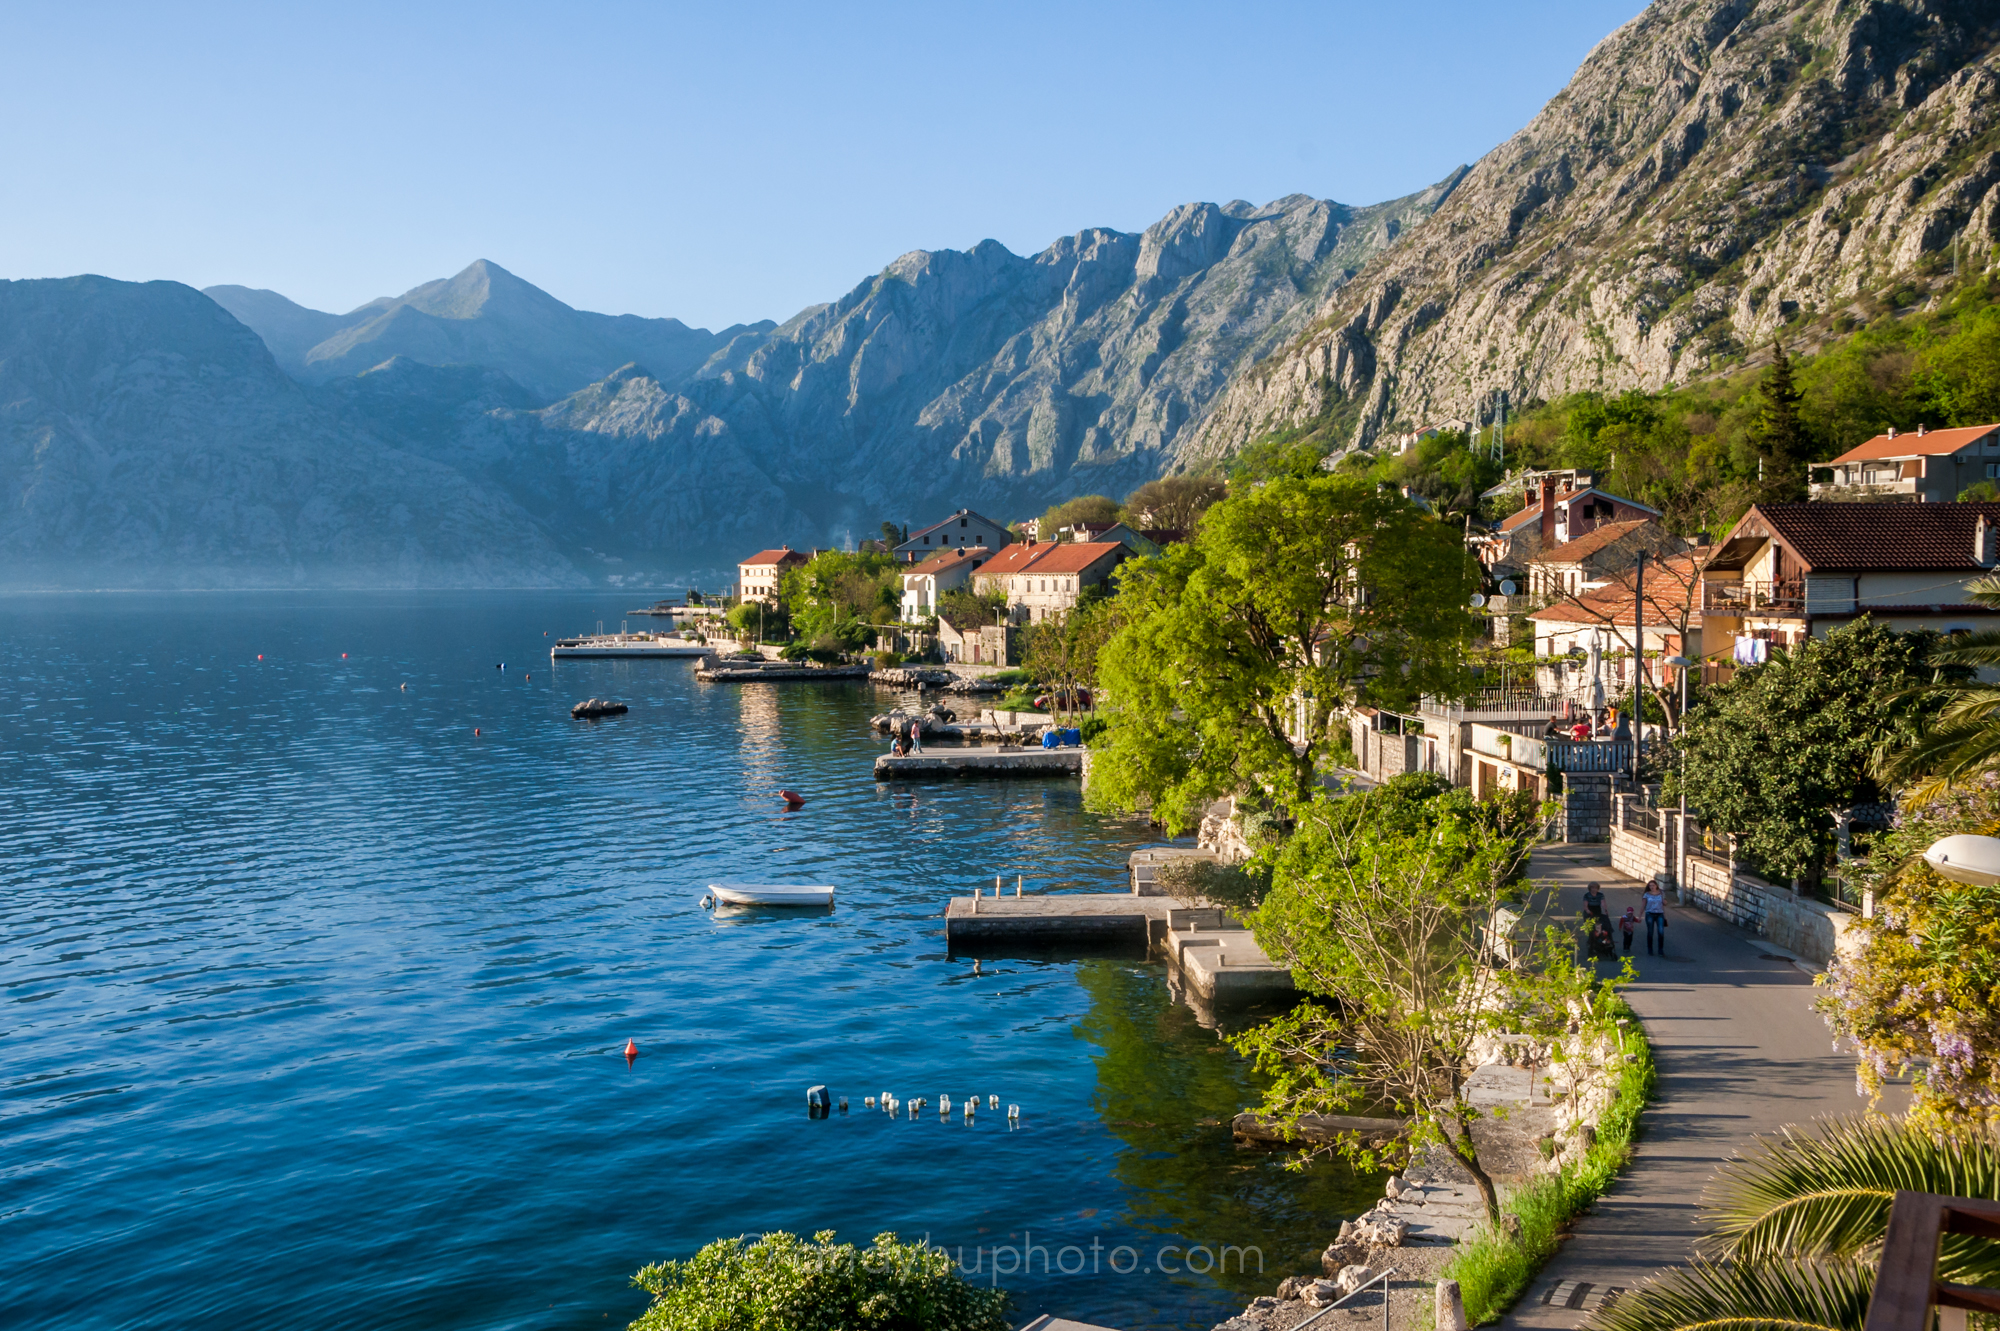 The Most Beautiful Street in Kotor